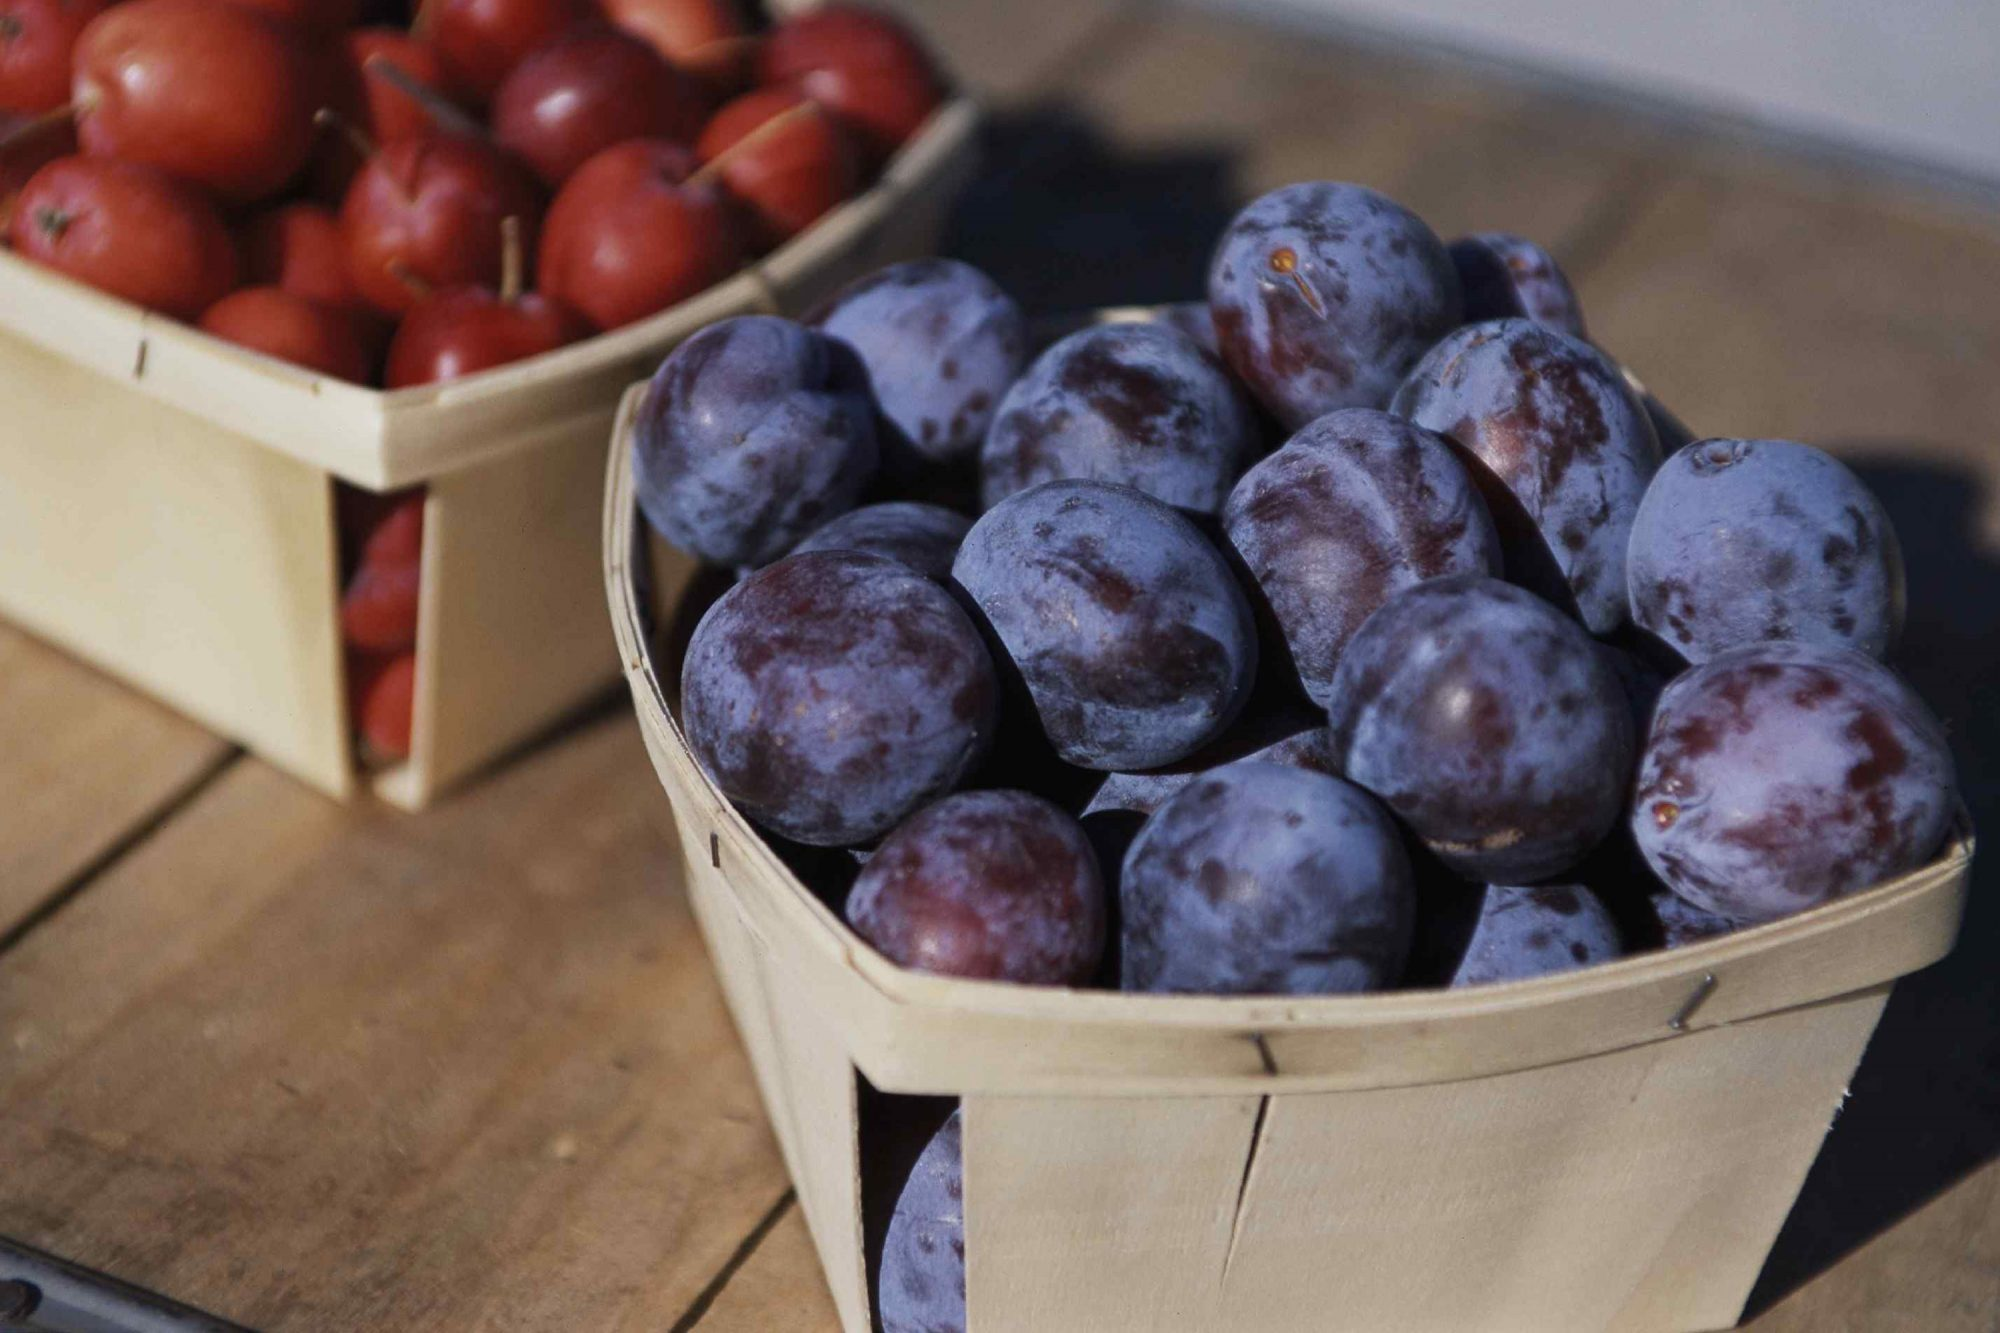 Plums in wood crates